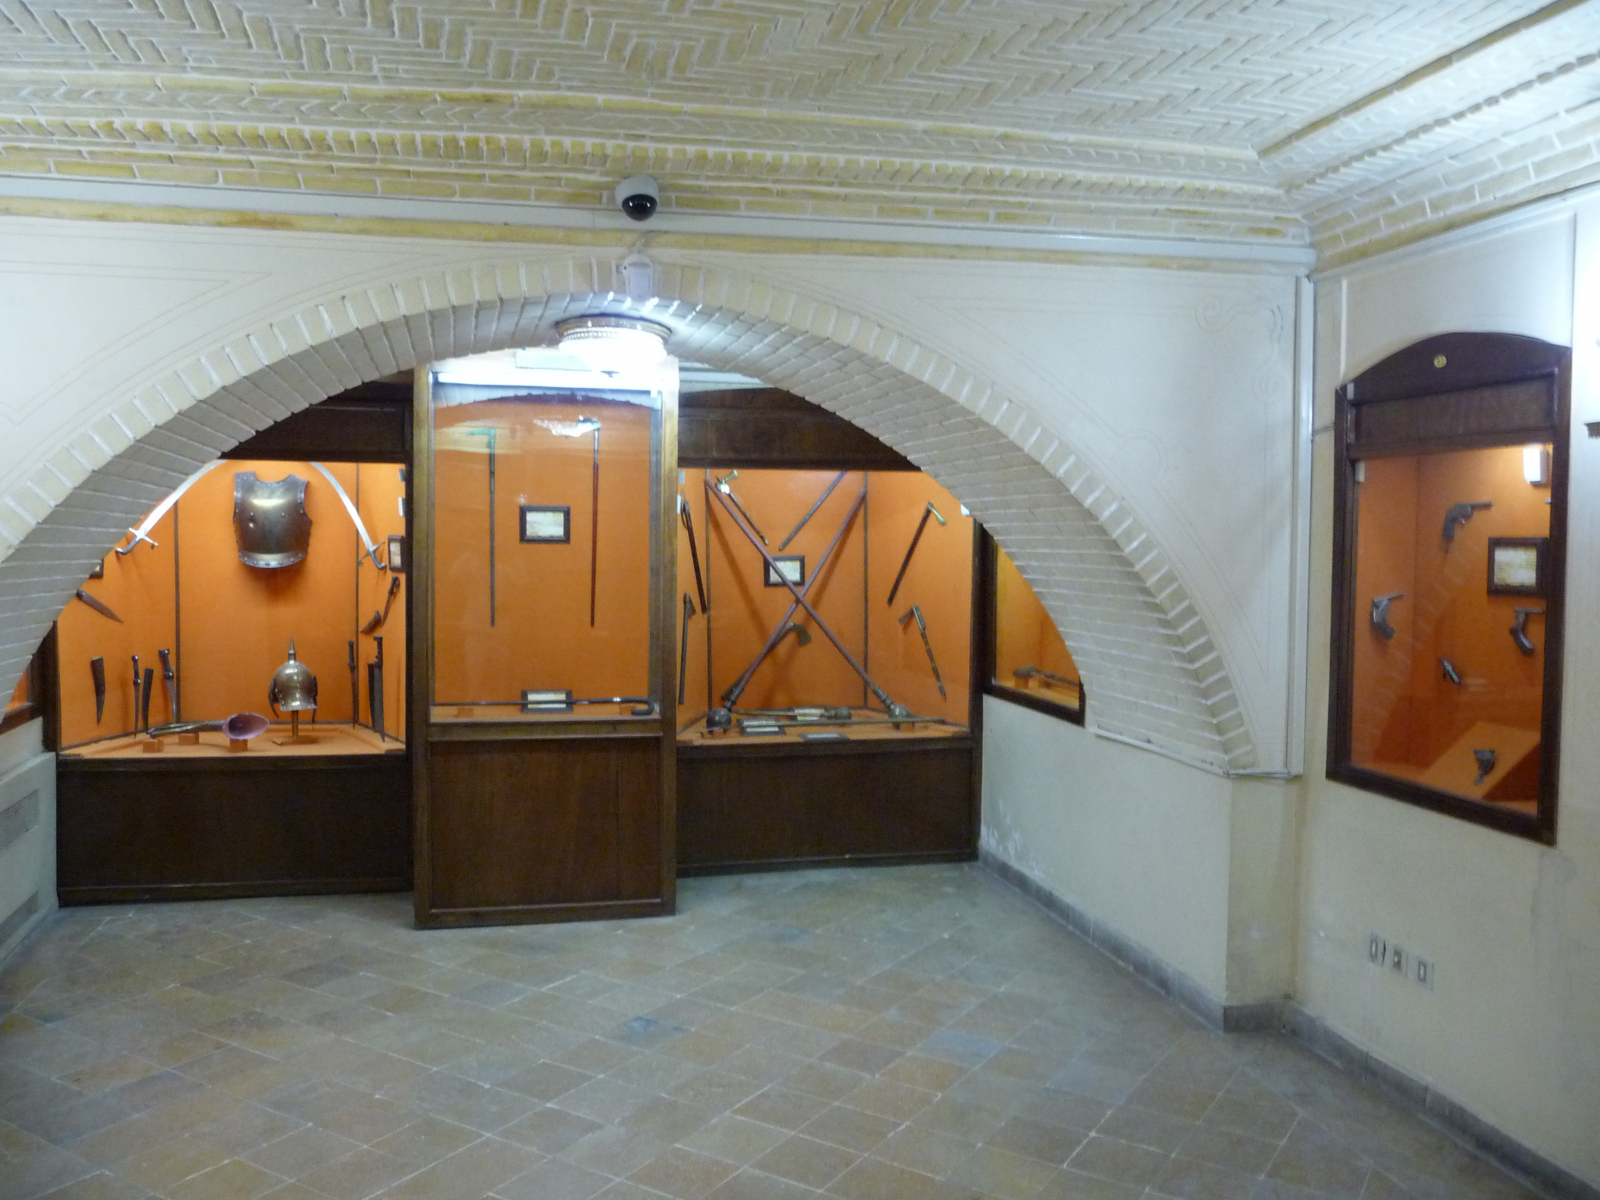 Baq-e Afifabad - Museum - Weapons Steel